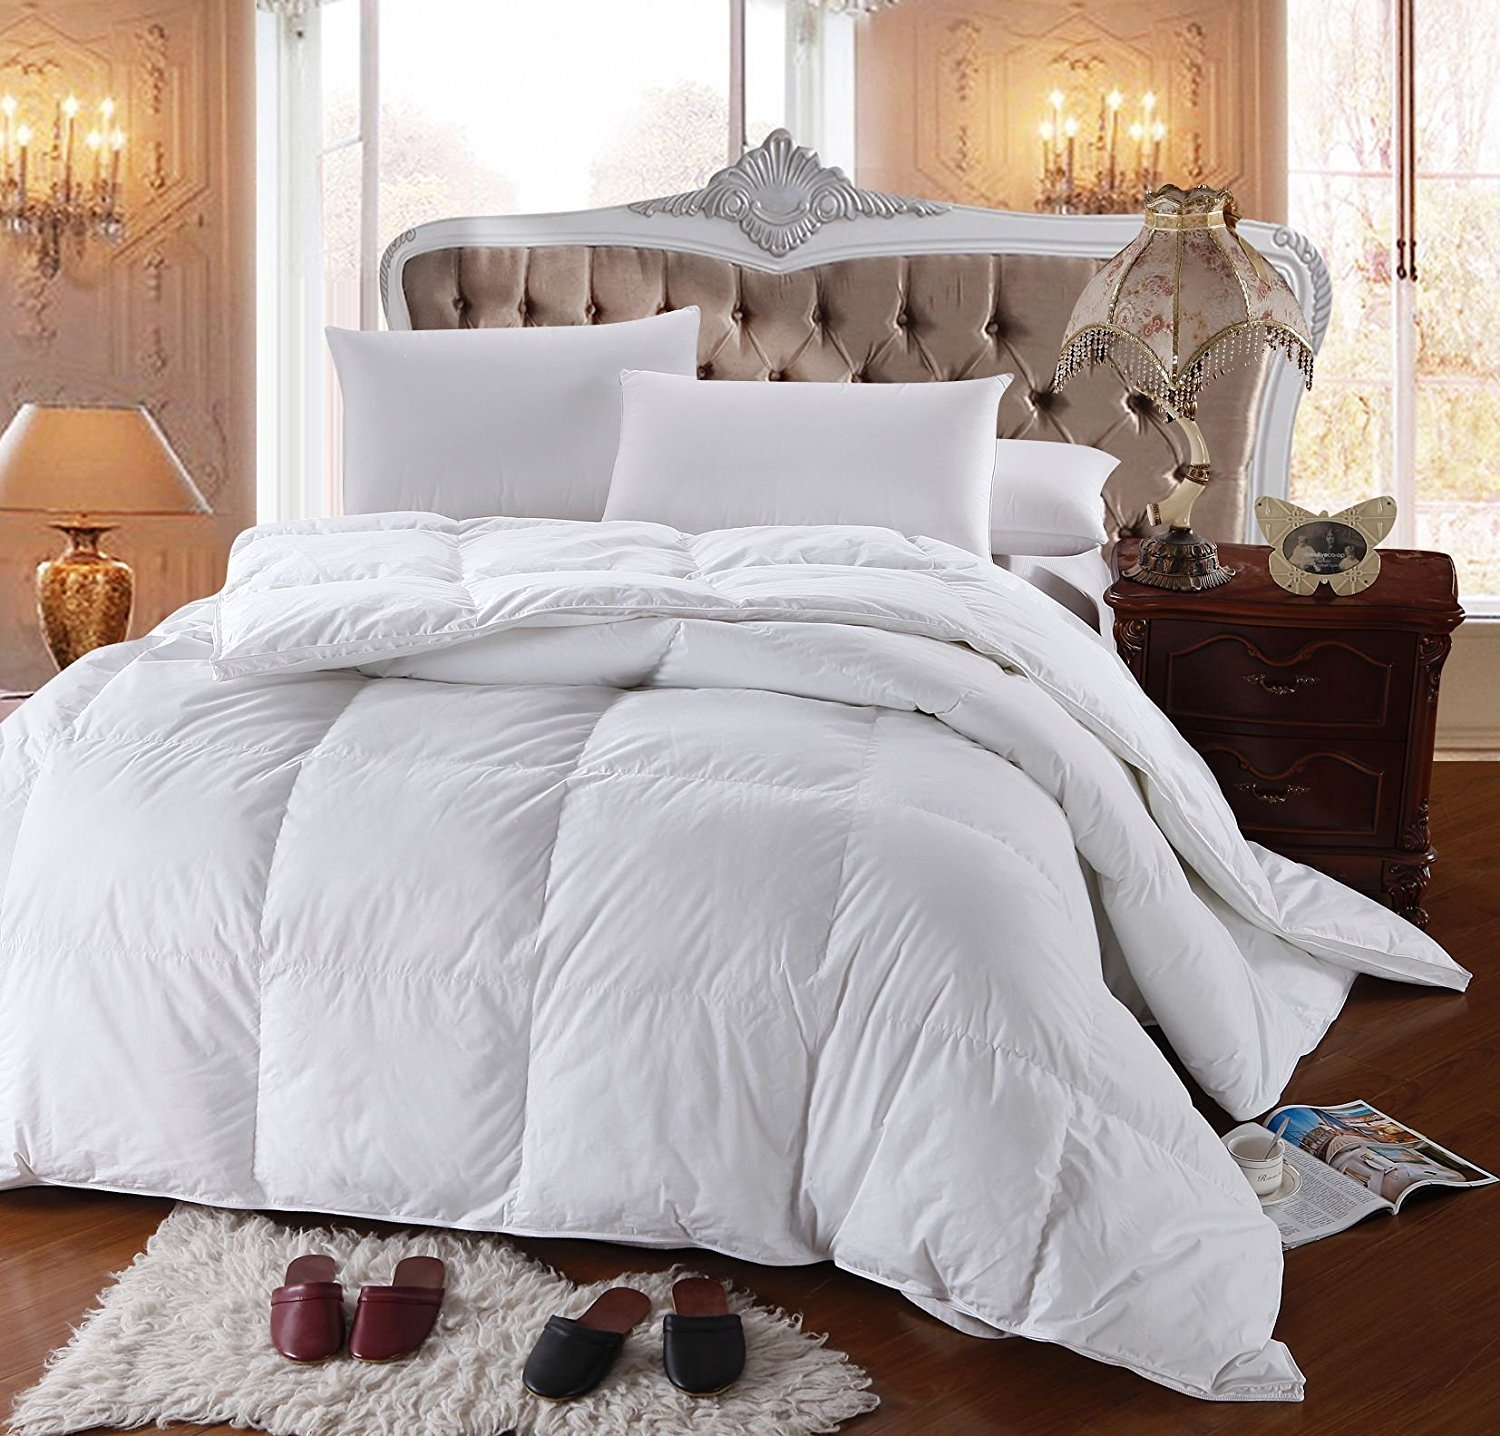 down solid comforter sheet the products color alternative online comforters original people